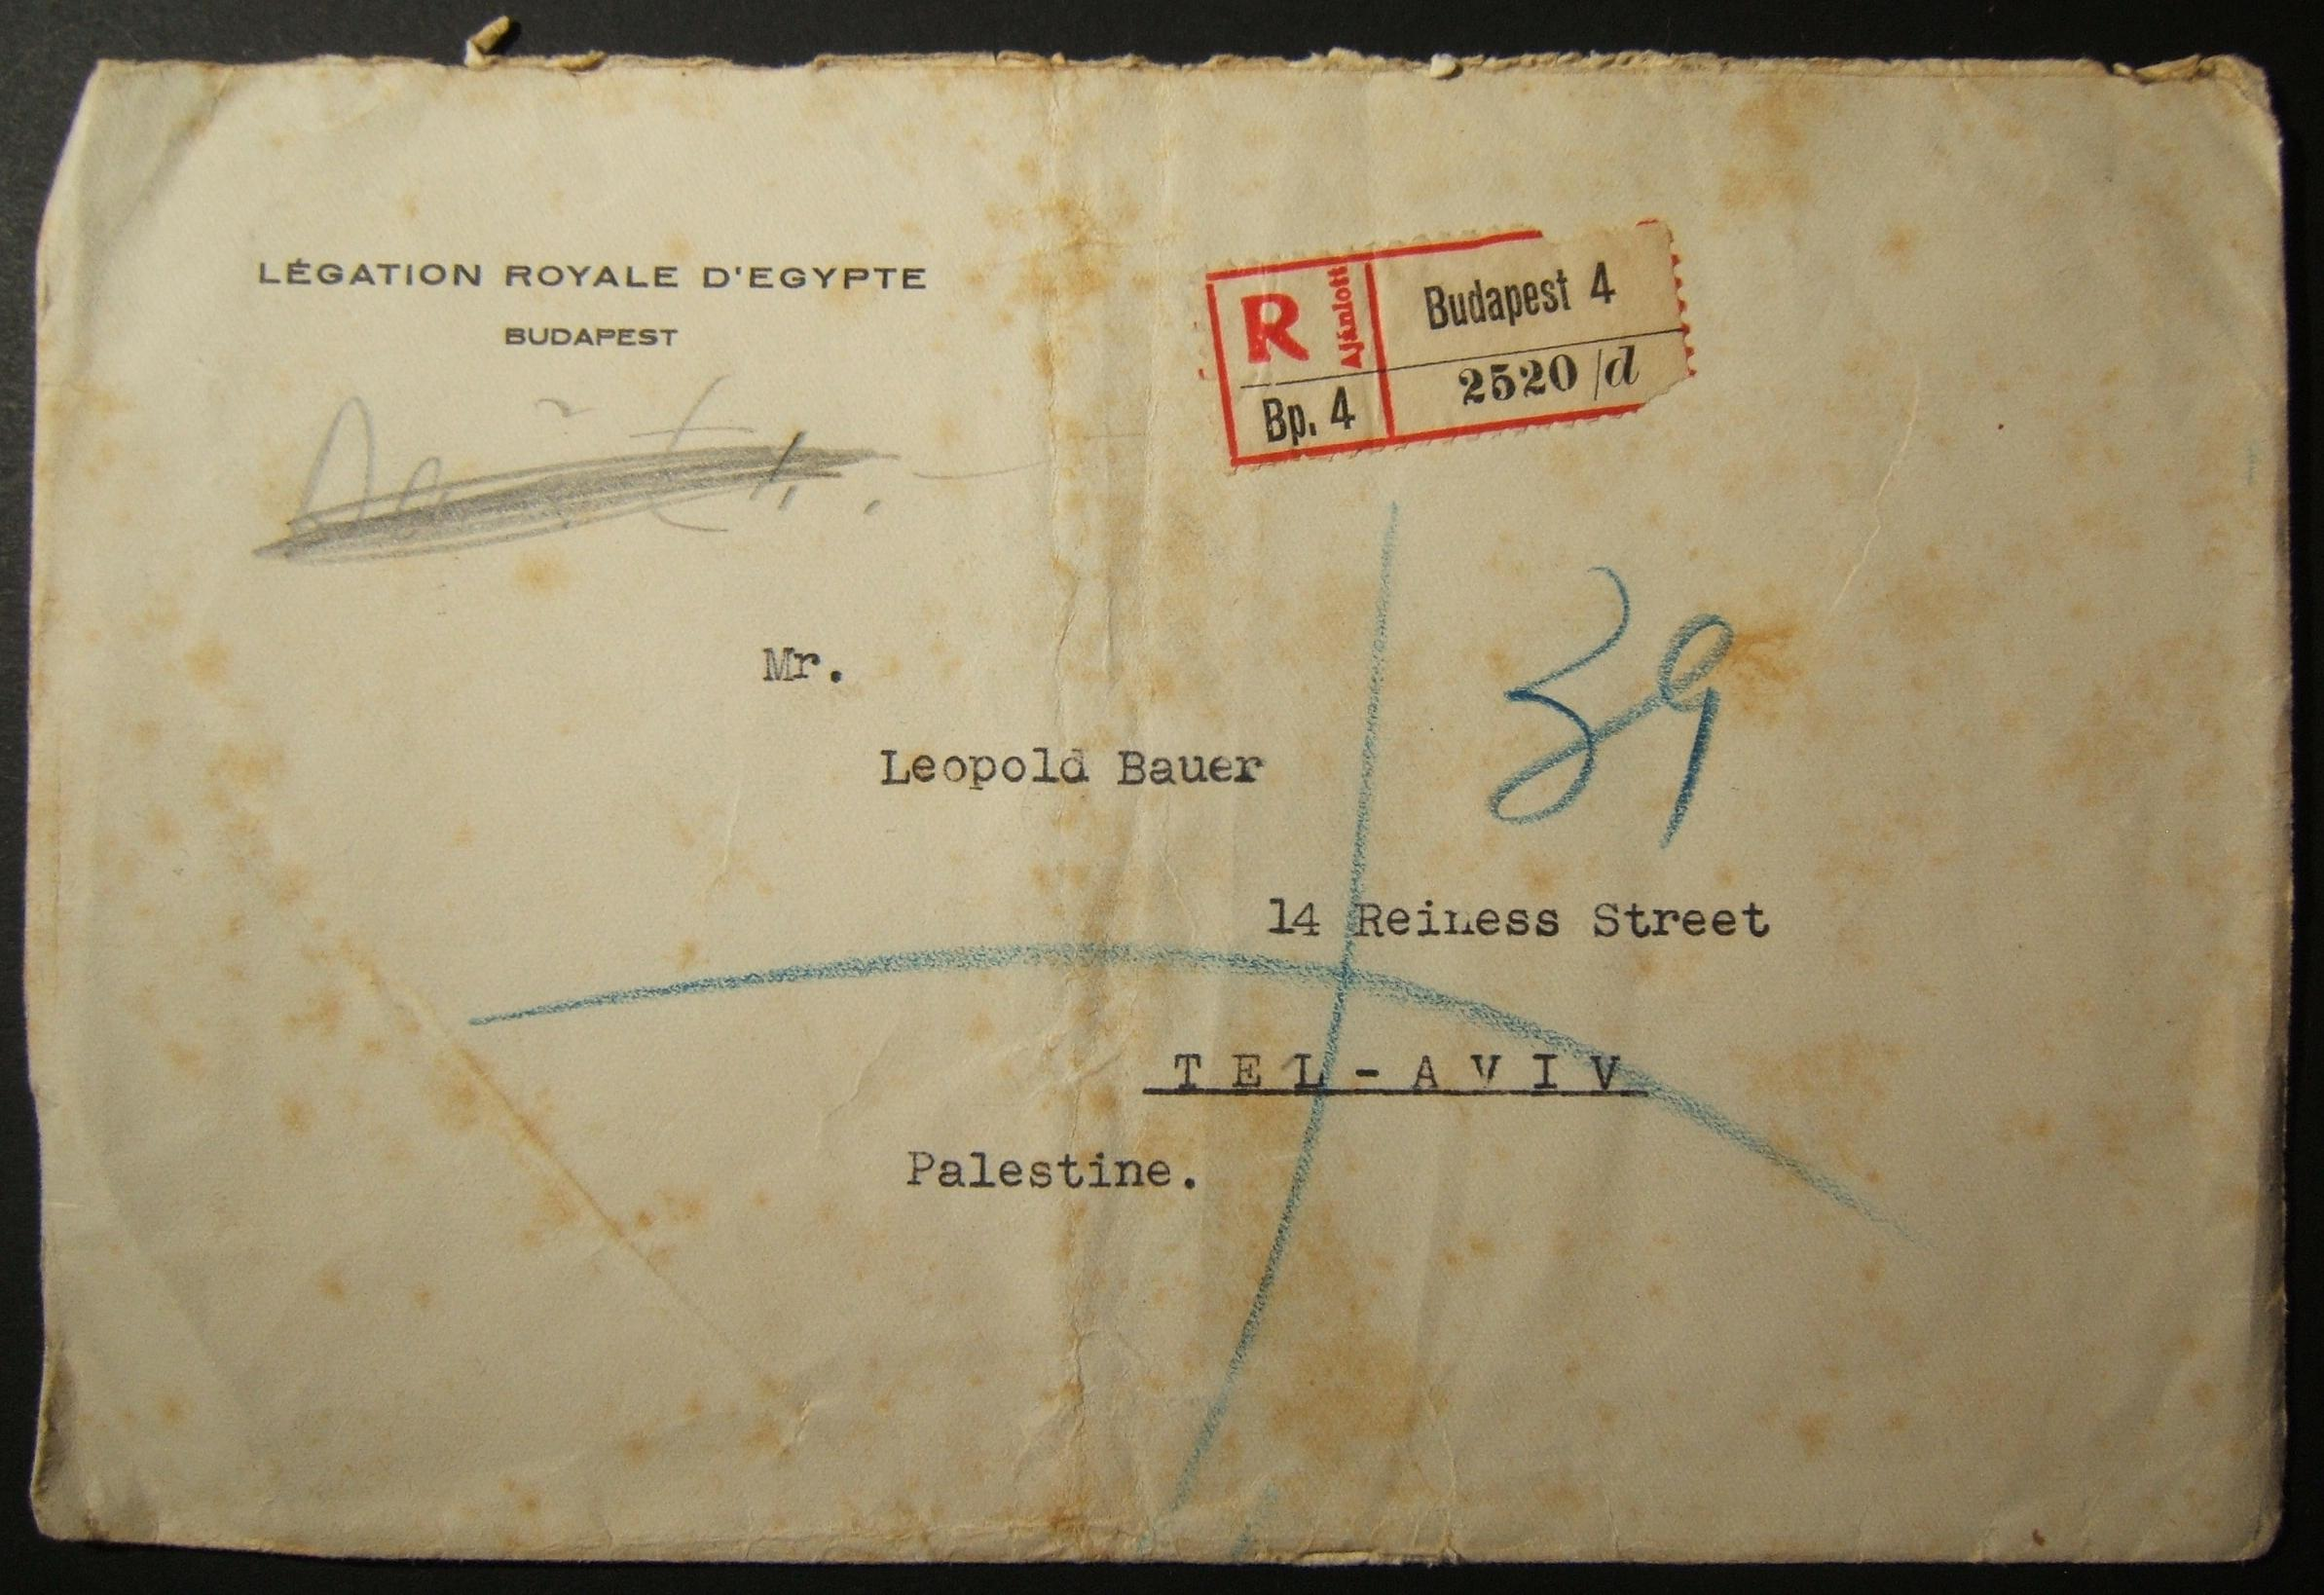 8/1939 Jewish refugee mail from Egyptian Legation BUDAPEST to TEL AVIV, with cachet